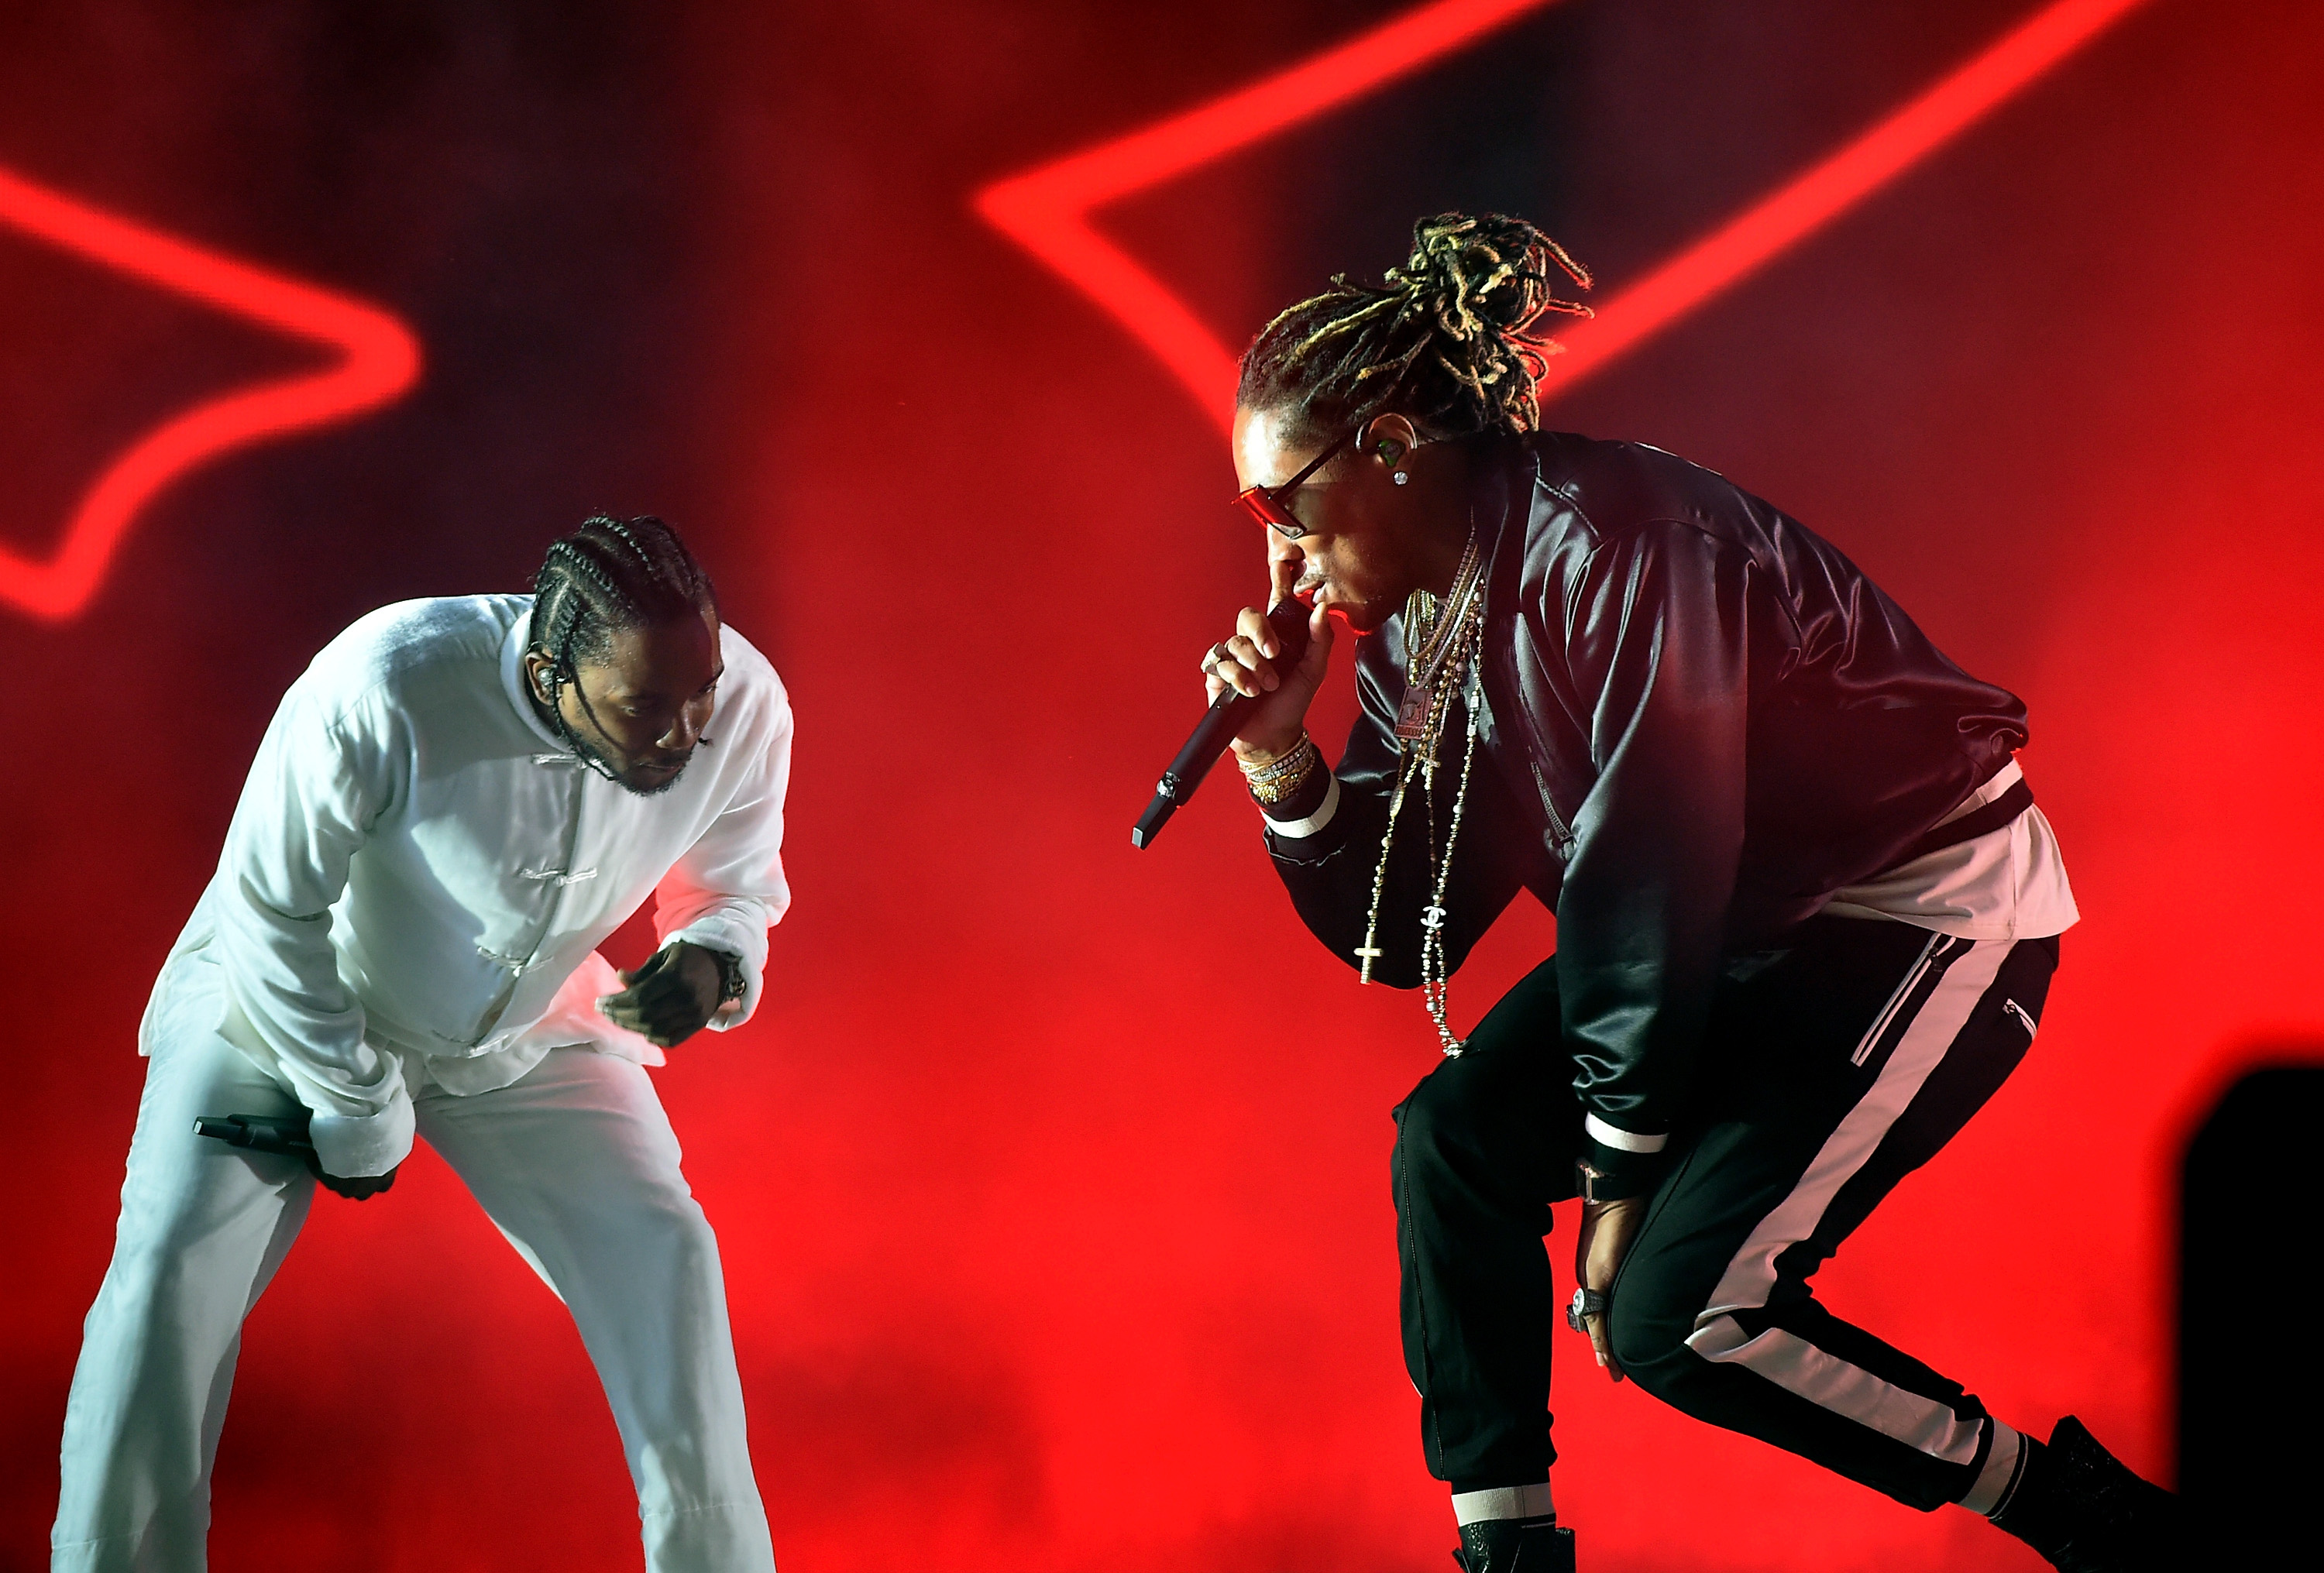 Kendrick Lamar and Future performing at Coachella